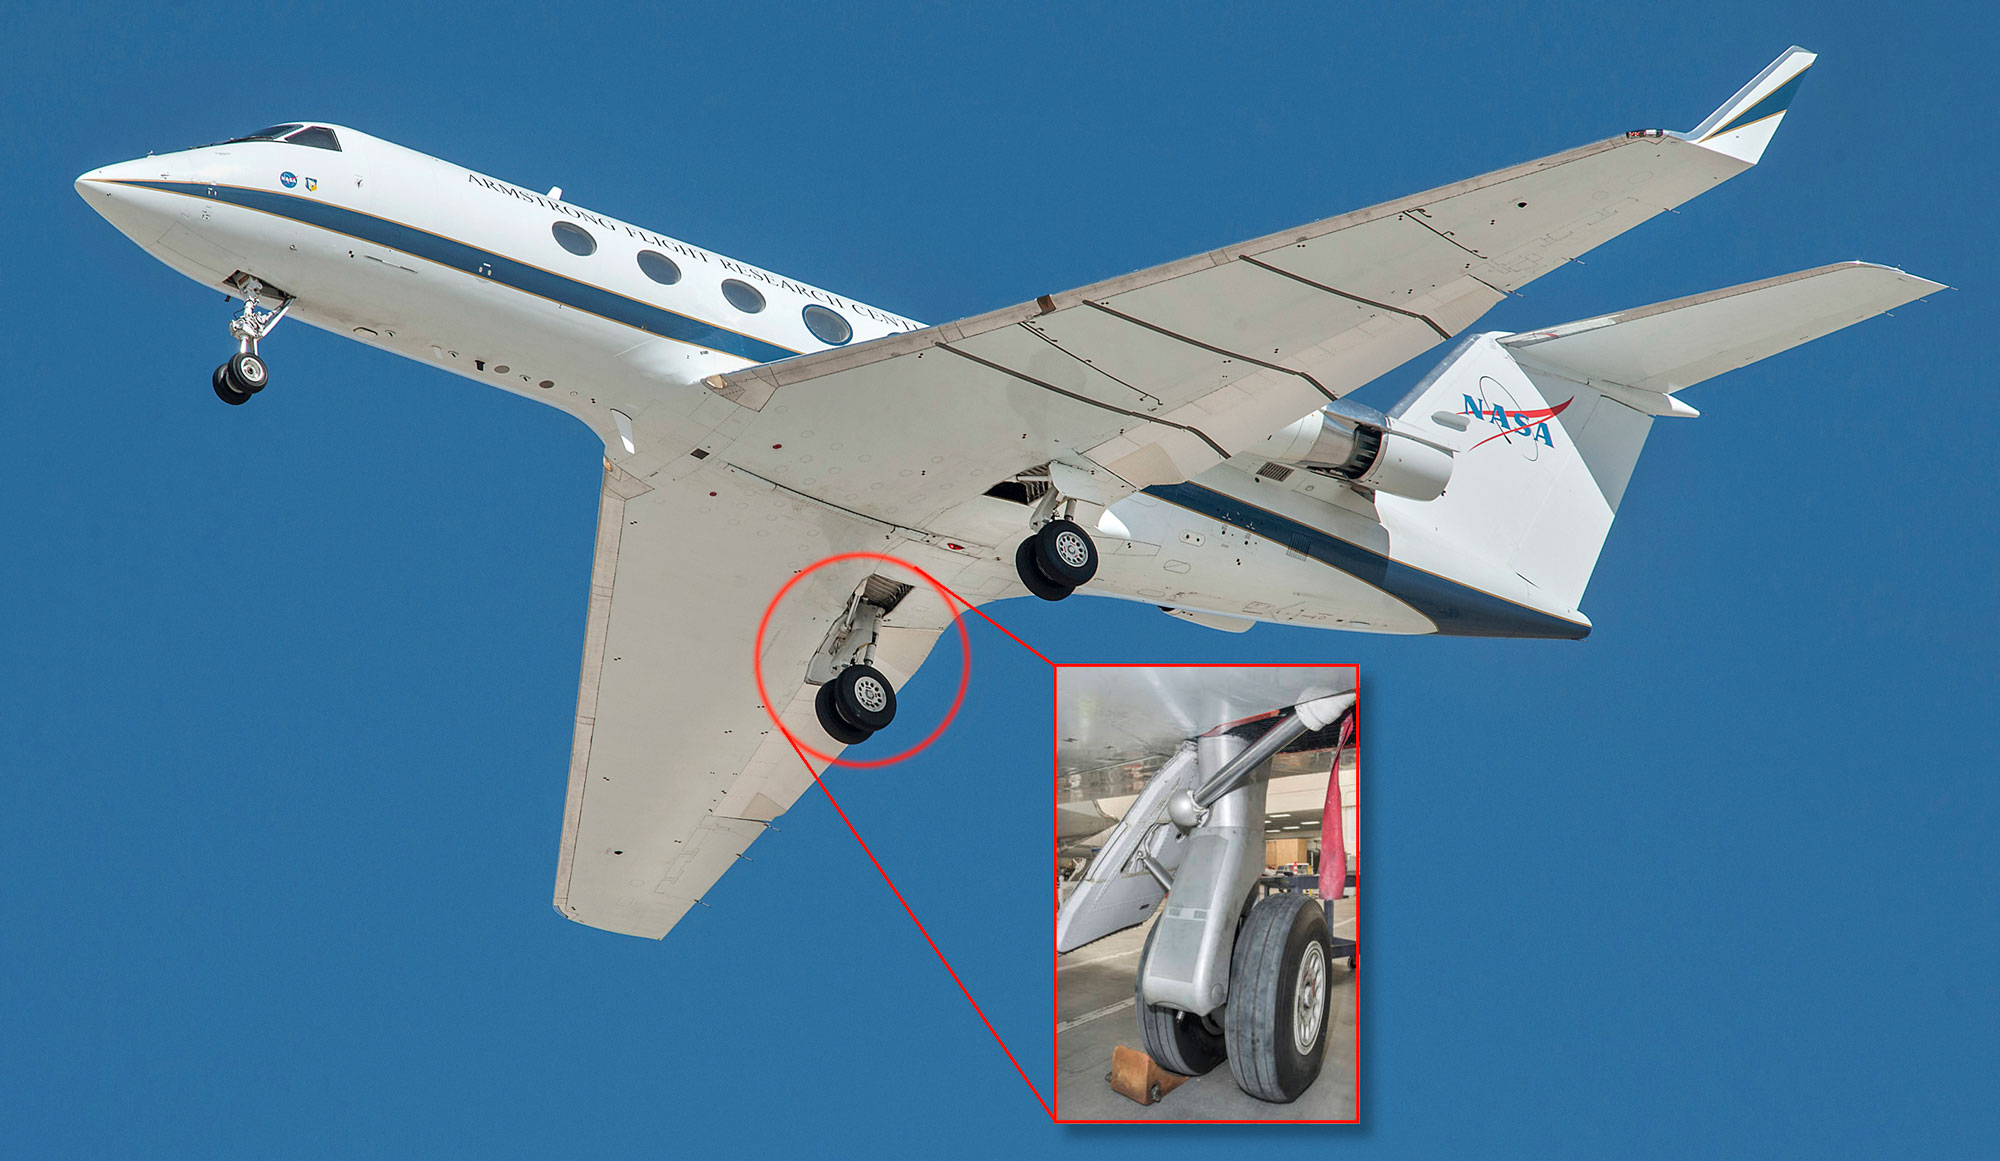 Flapon Nasa Tech Cuts Airframe Noise By 70 On Giii Testbed Business